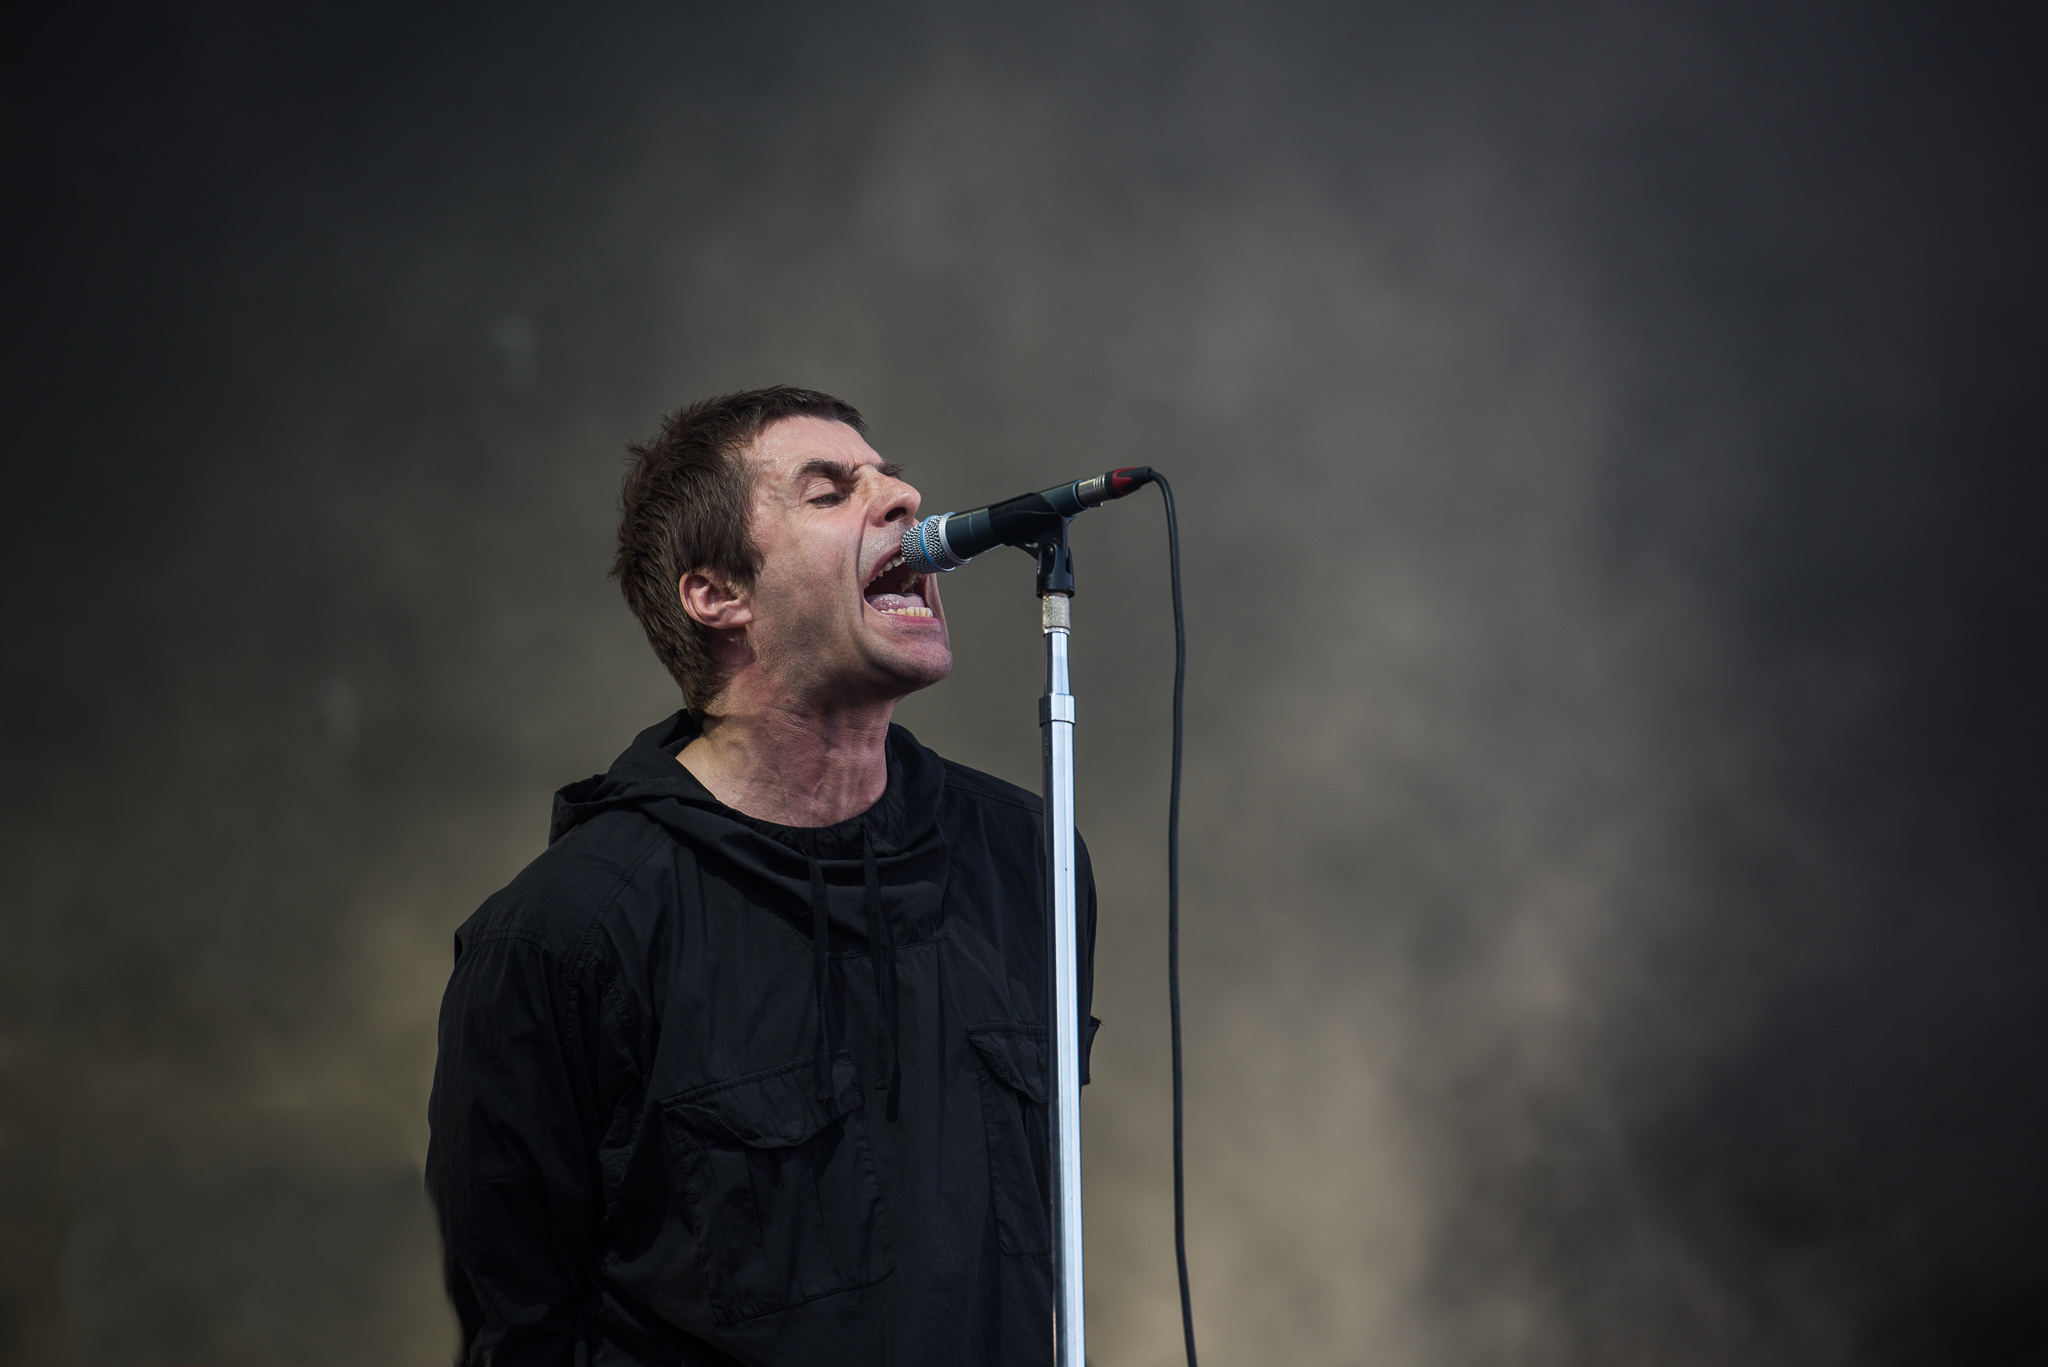 Liam Gallagher will be bringing his UK tour to Cardiff this December.